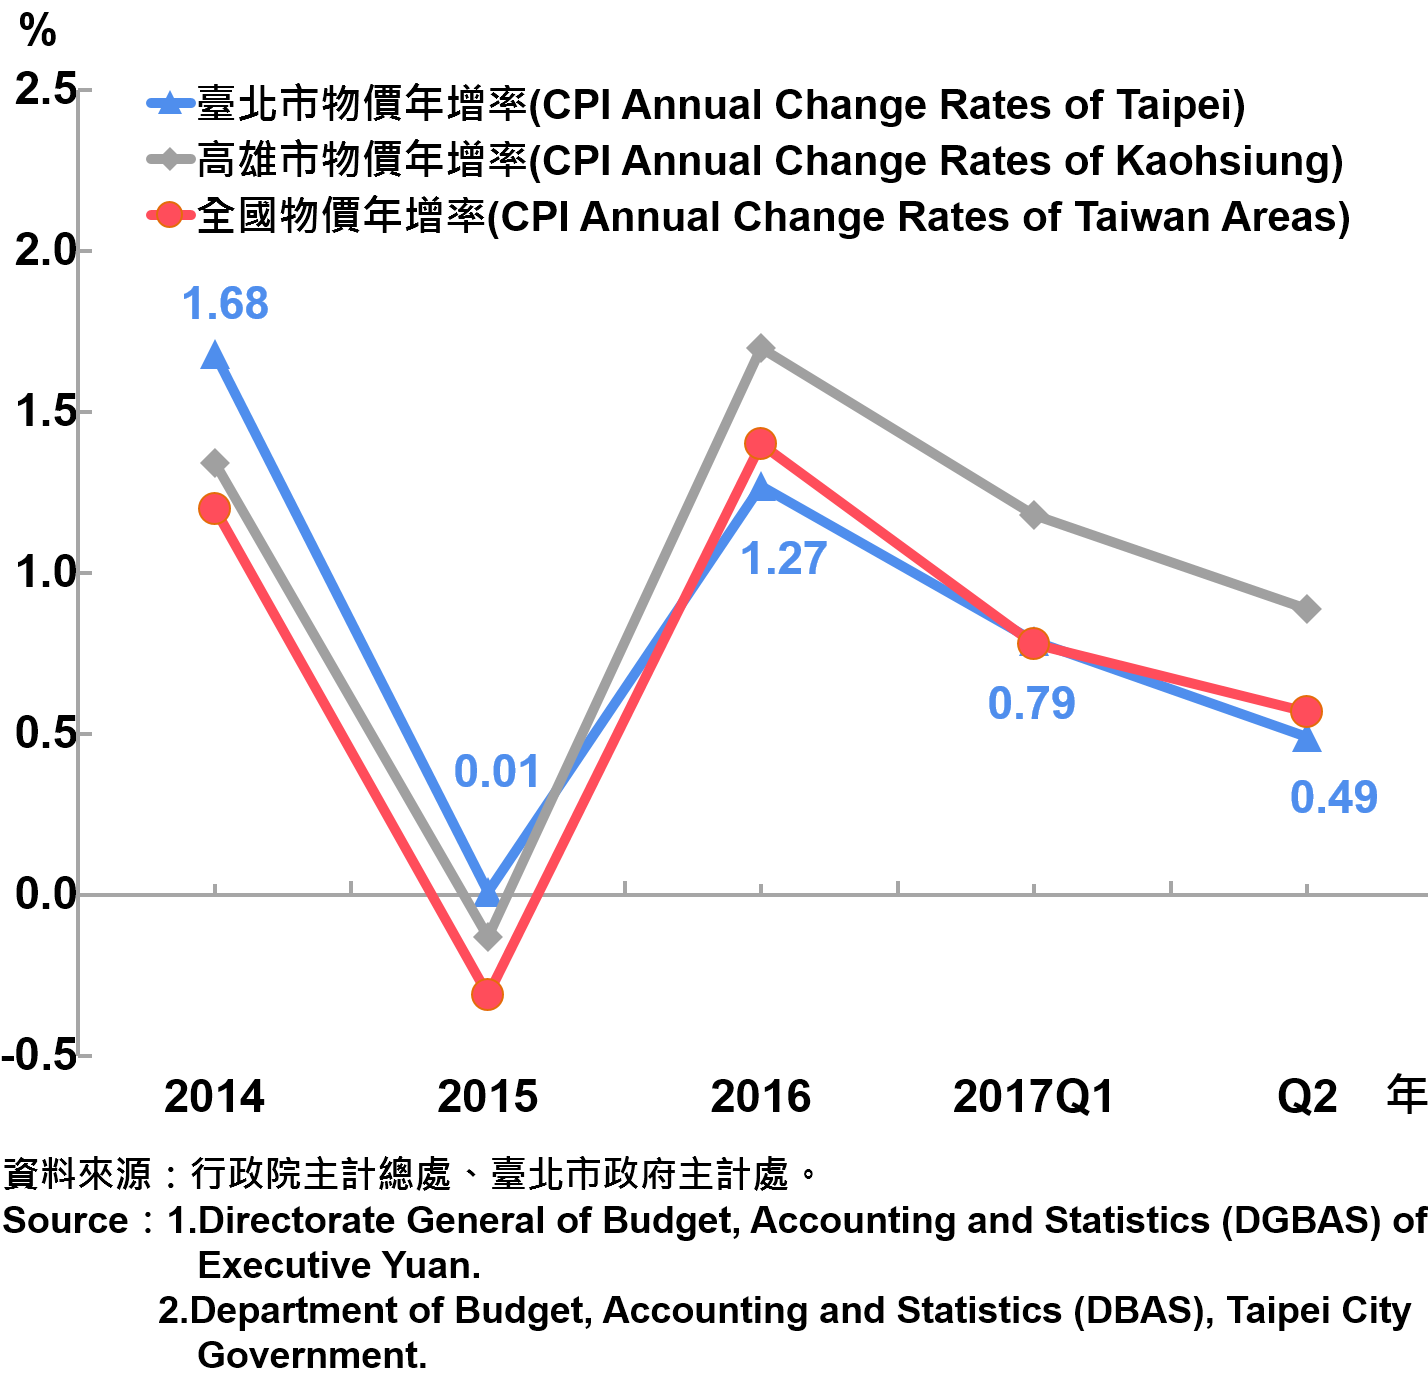 圖1、臺北市消費者物價指數(CPI)上漲率—2017Q2 Annual Growth Rate of CPI in Taipei City—2017Q2